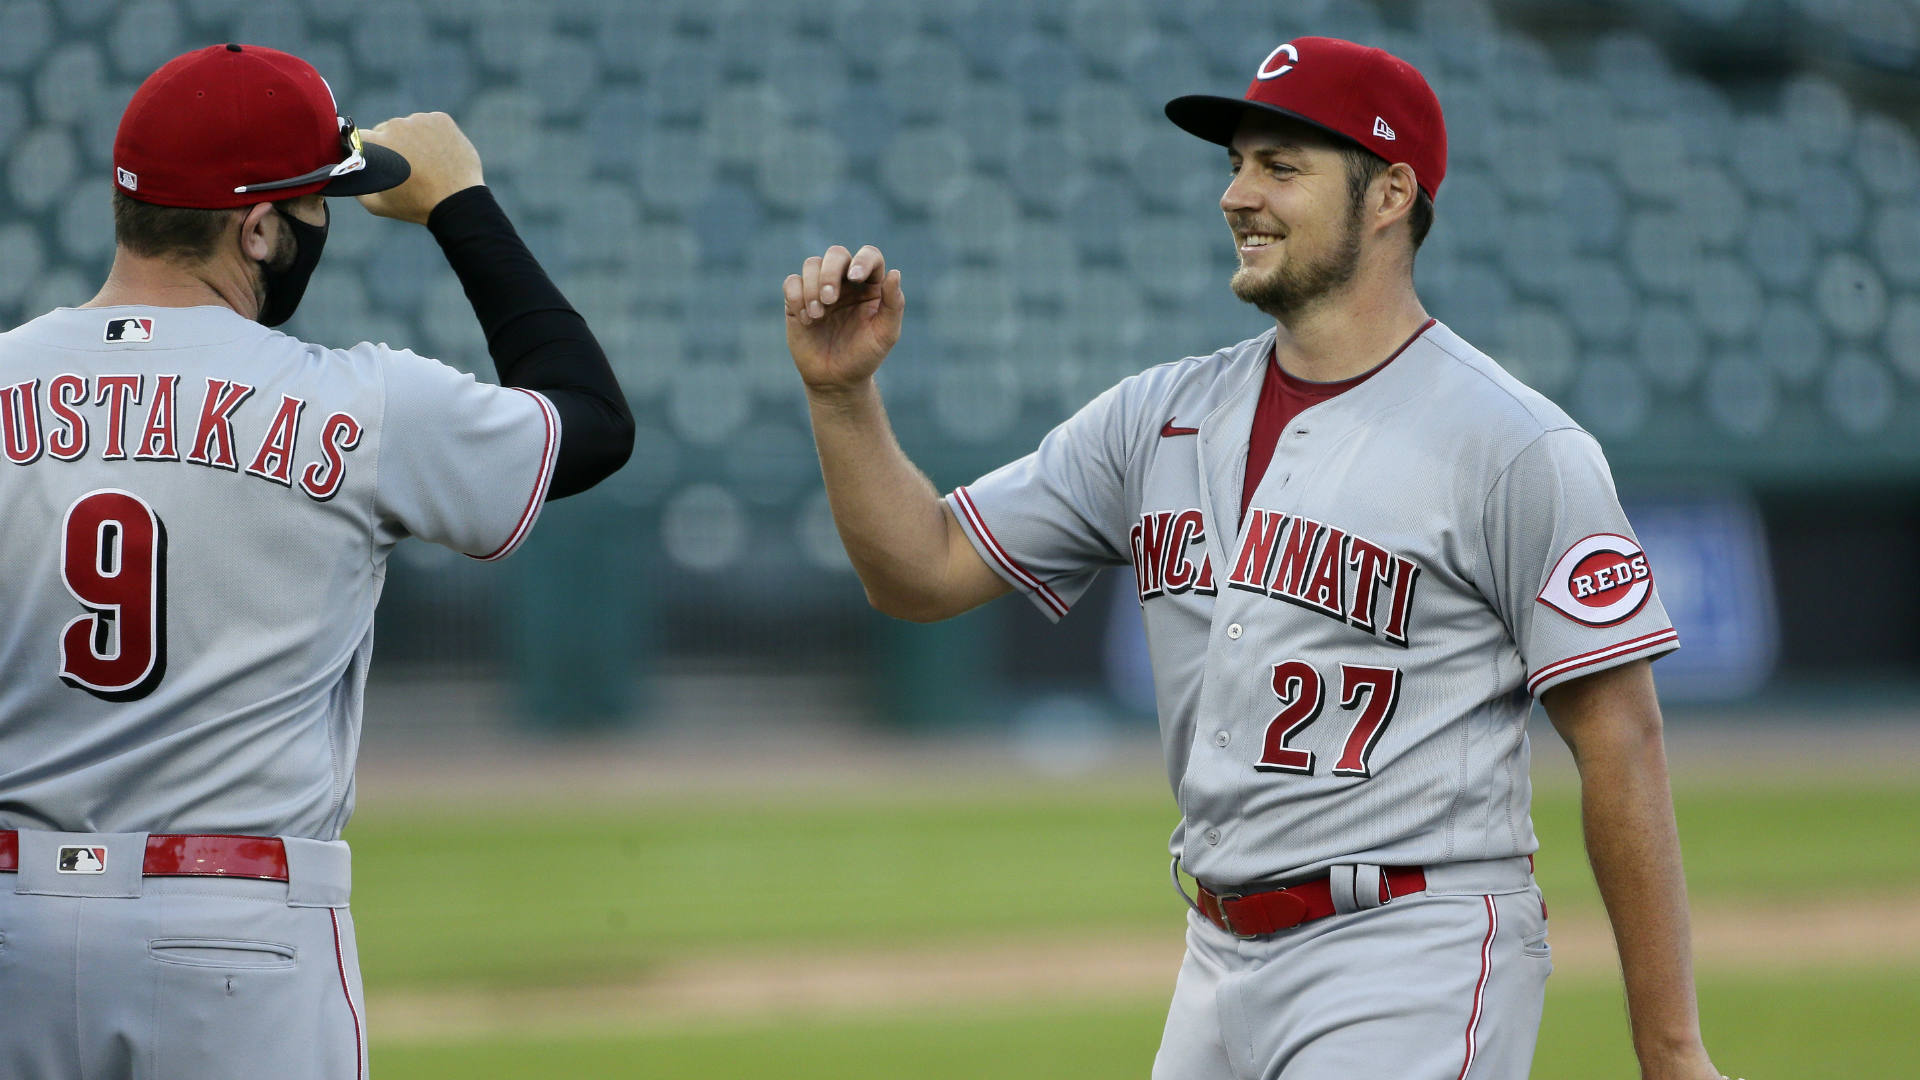 Reds and Tigers show seven-inning MLB doubleheader might not be here to stay — but will be cool while it lasts 1